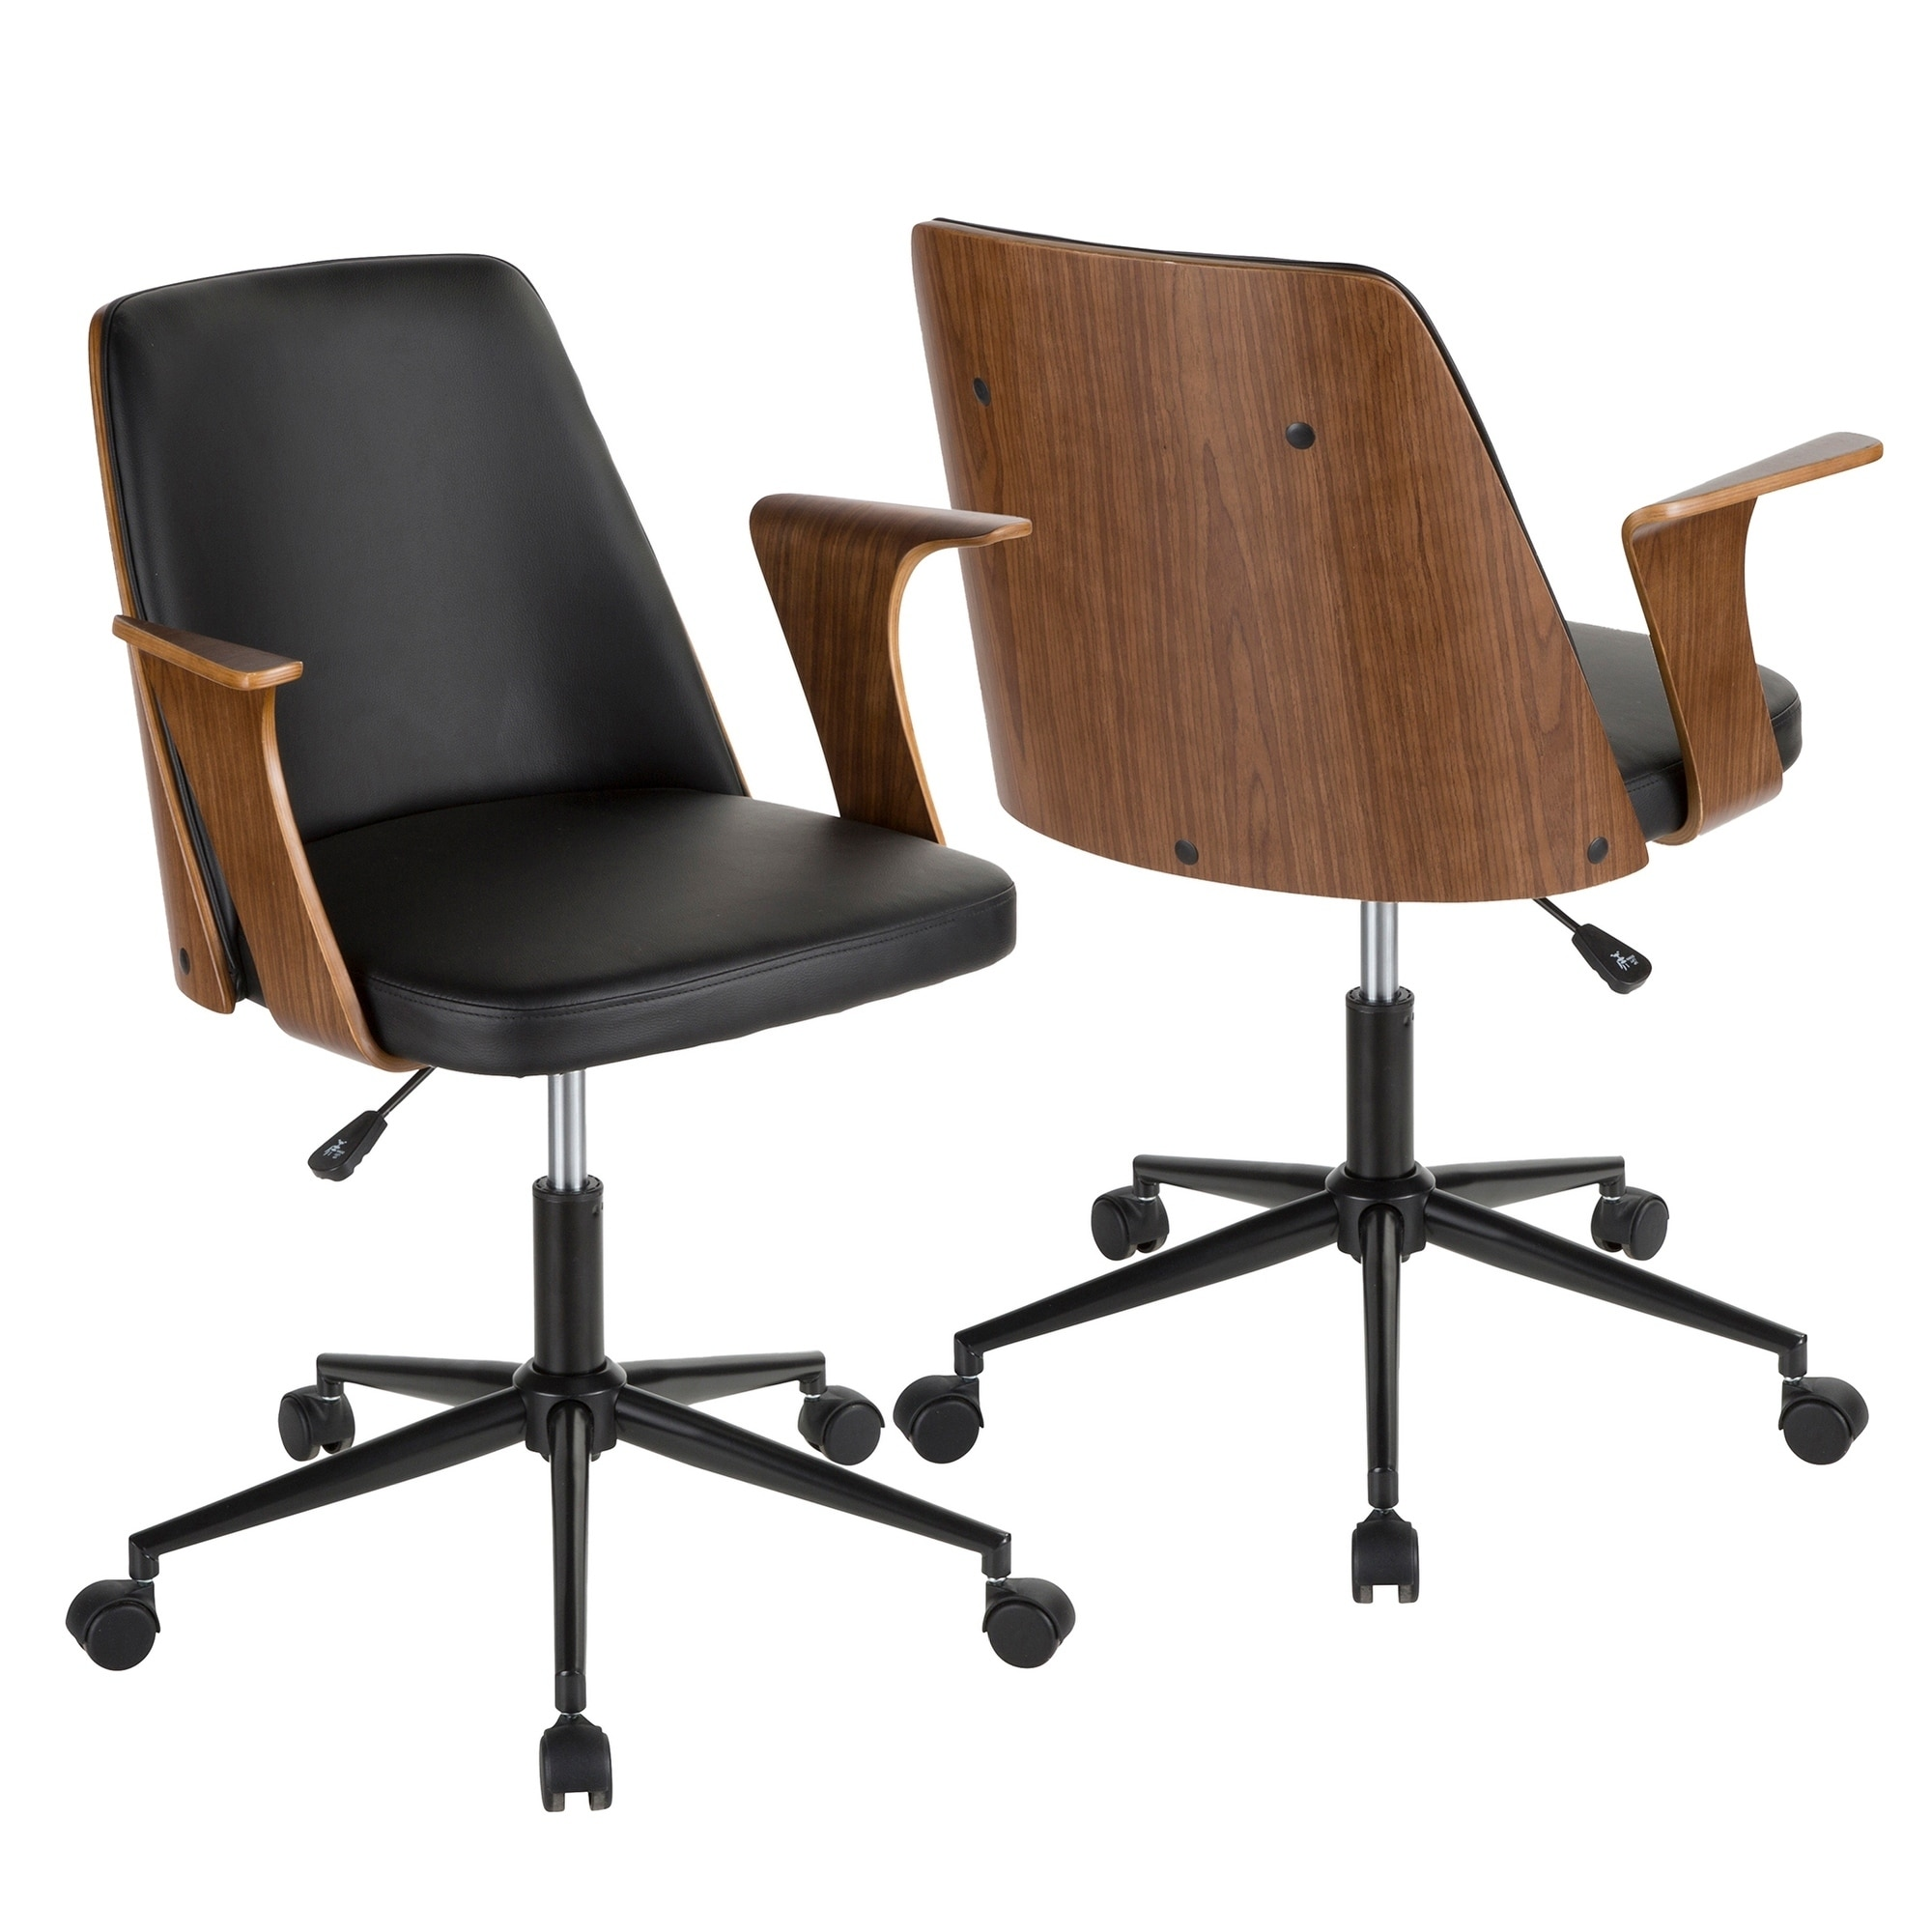 Shop Verdana Mid Century Modern Upholstered Office Chair With Wood